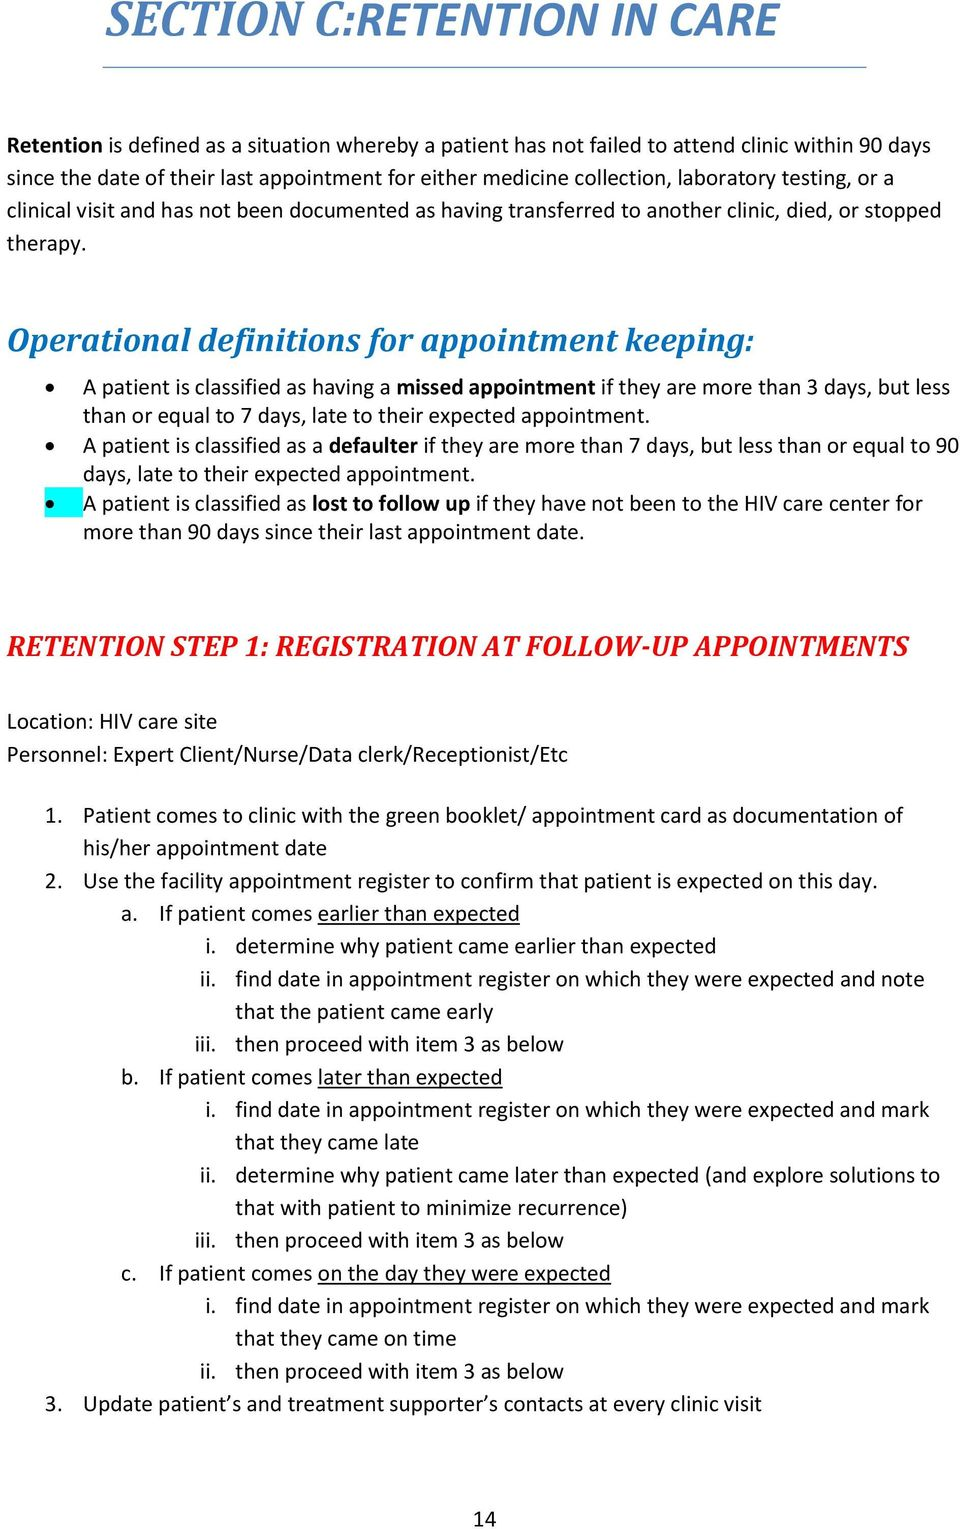 Operational definitions for appointment keeping: A patient is classified as having a missed appointment if they are more than 3 days, but less than or equal to 7 days, late to their expected